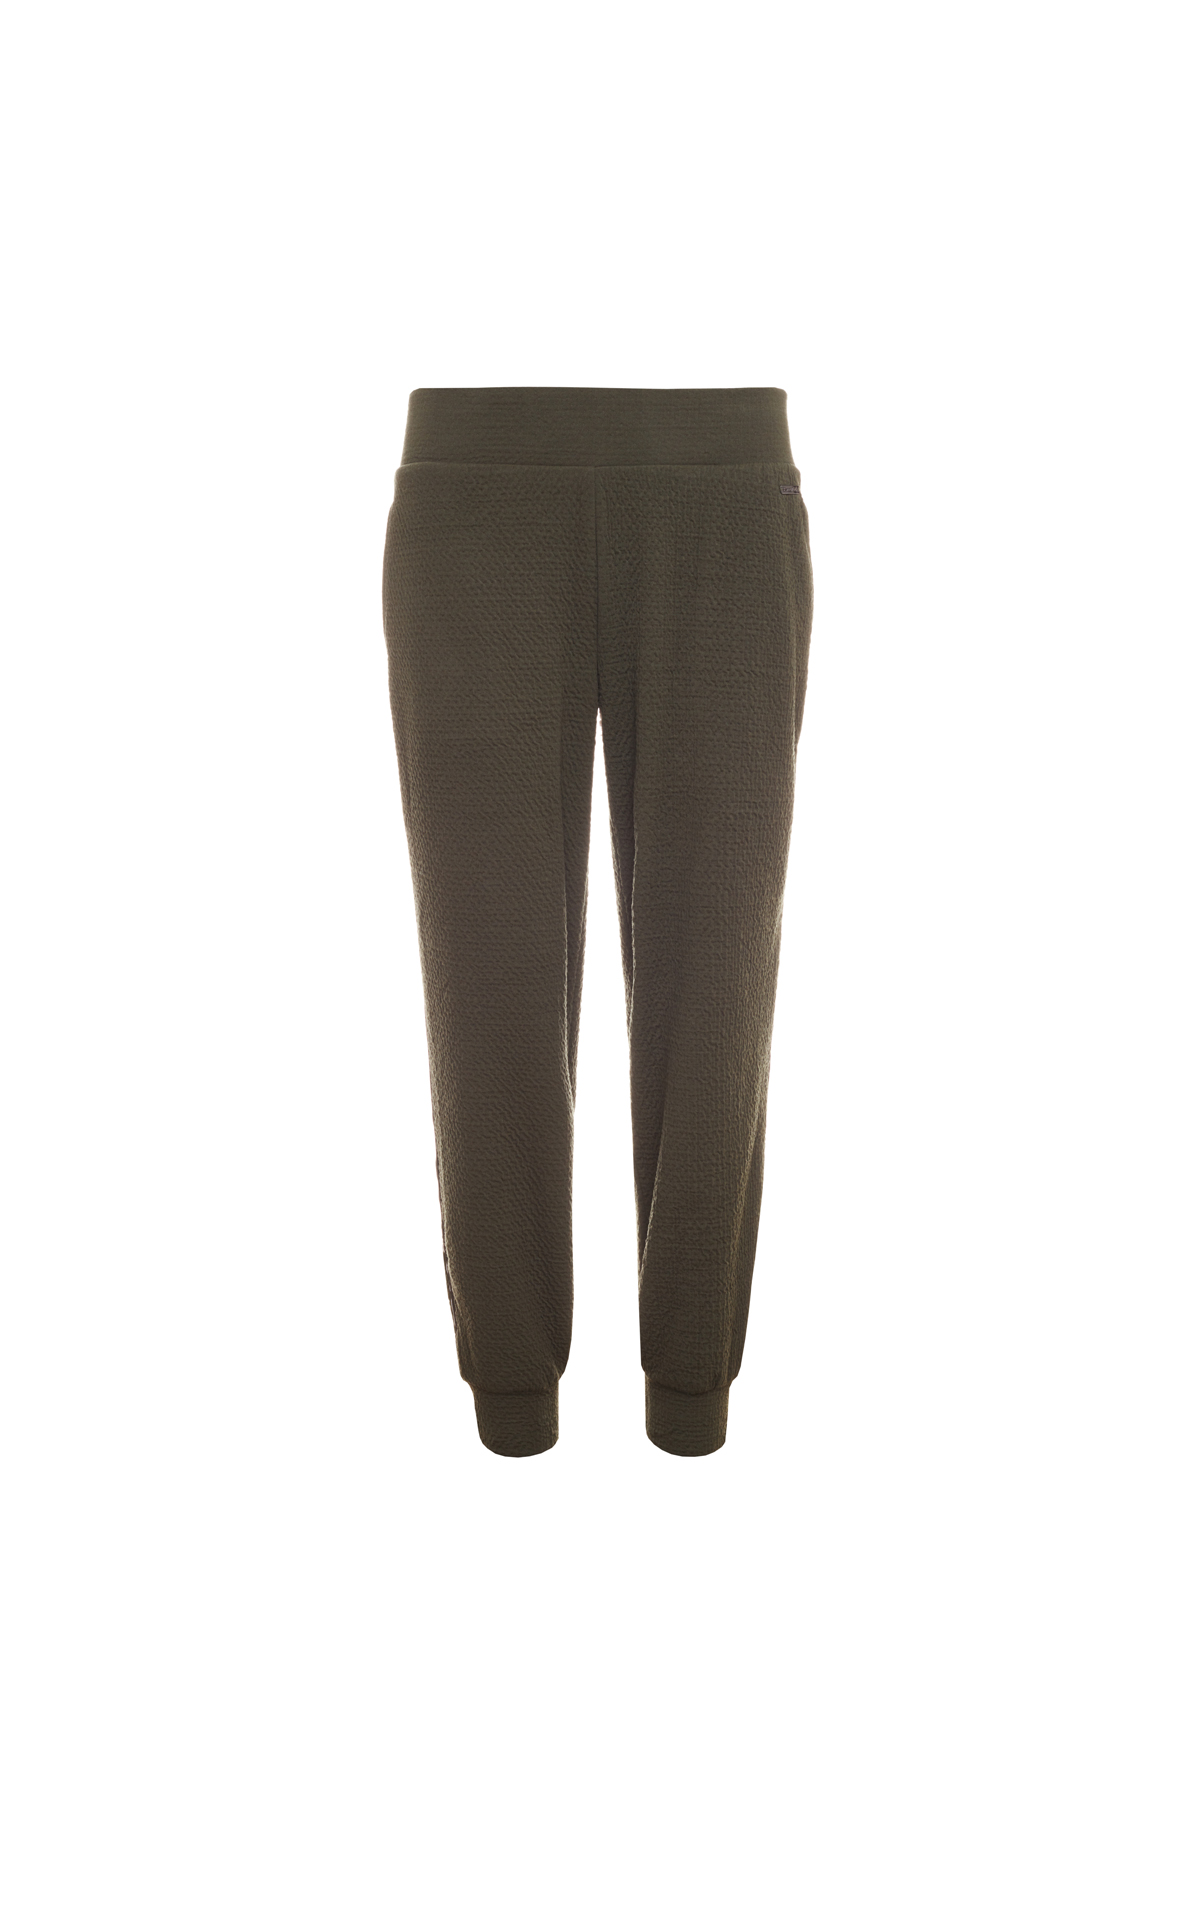 Sweaty Betty Connect cuff trouser from Bicester Village